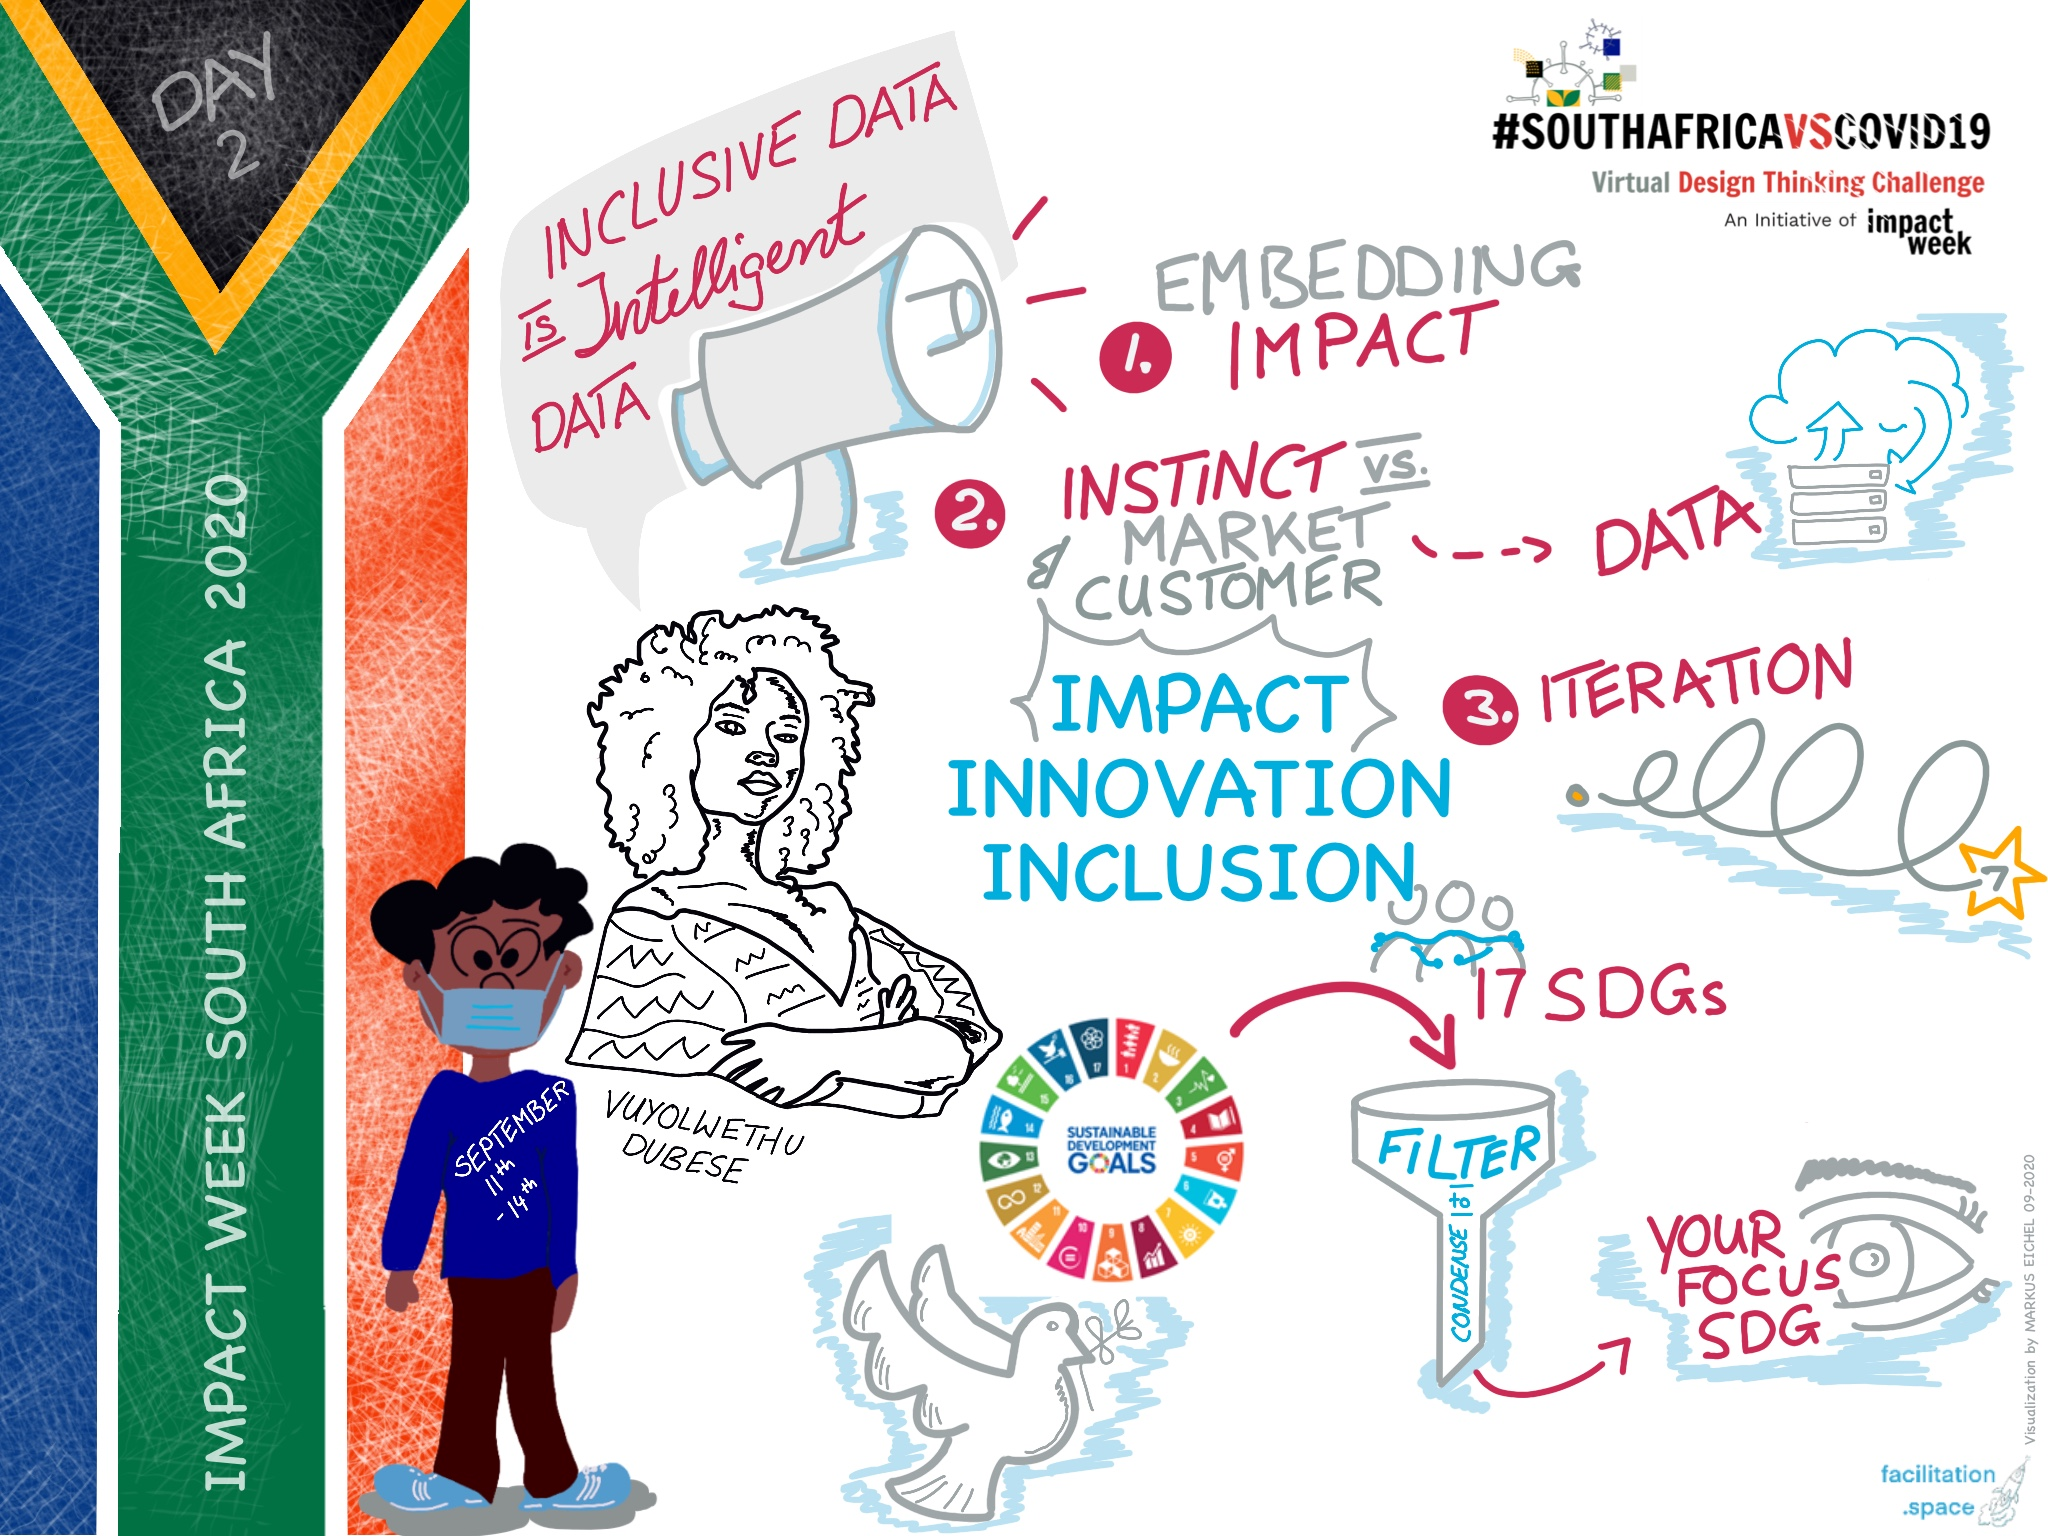 Keynote Vuyolwethu Dubese - Impact Week South Africa 2020 visualization by Markus Eichel from facilitation.space